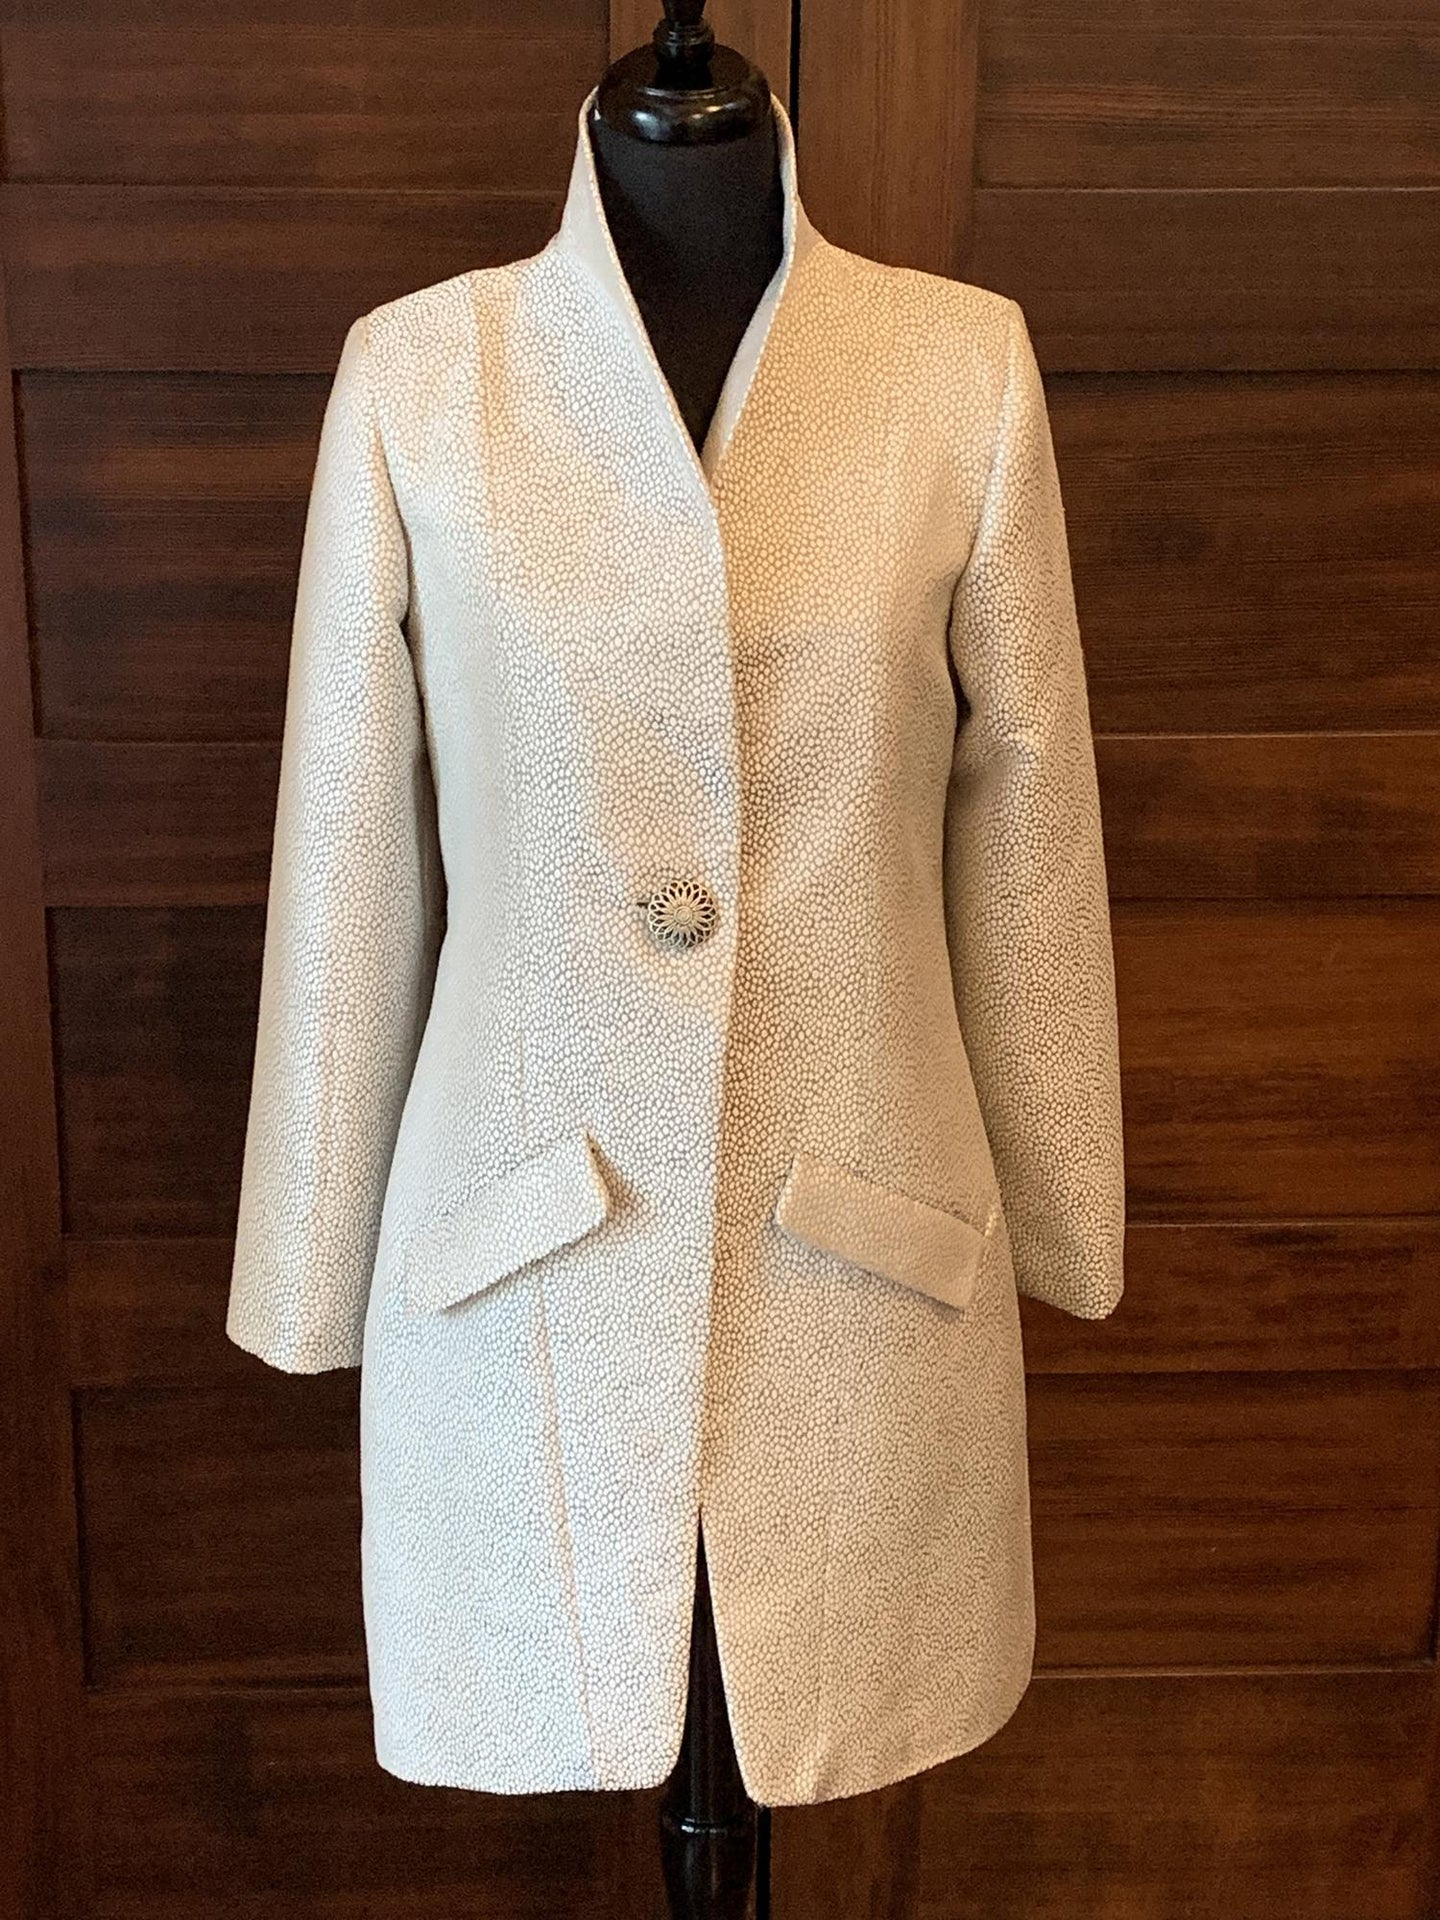 Long Sleeve Collared One-Button Blazer Coat